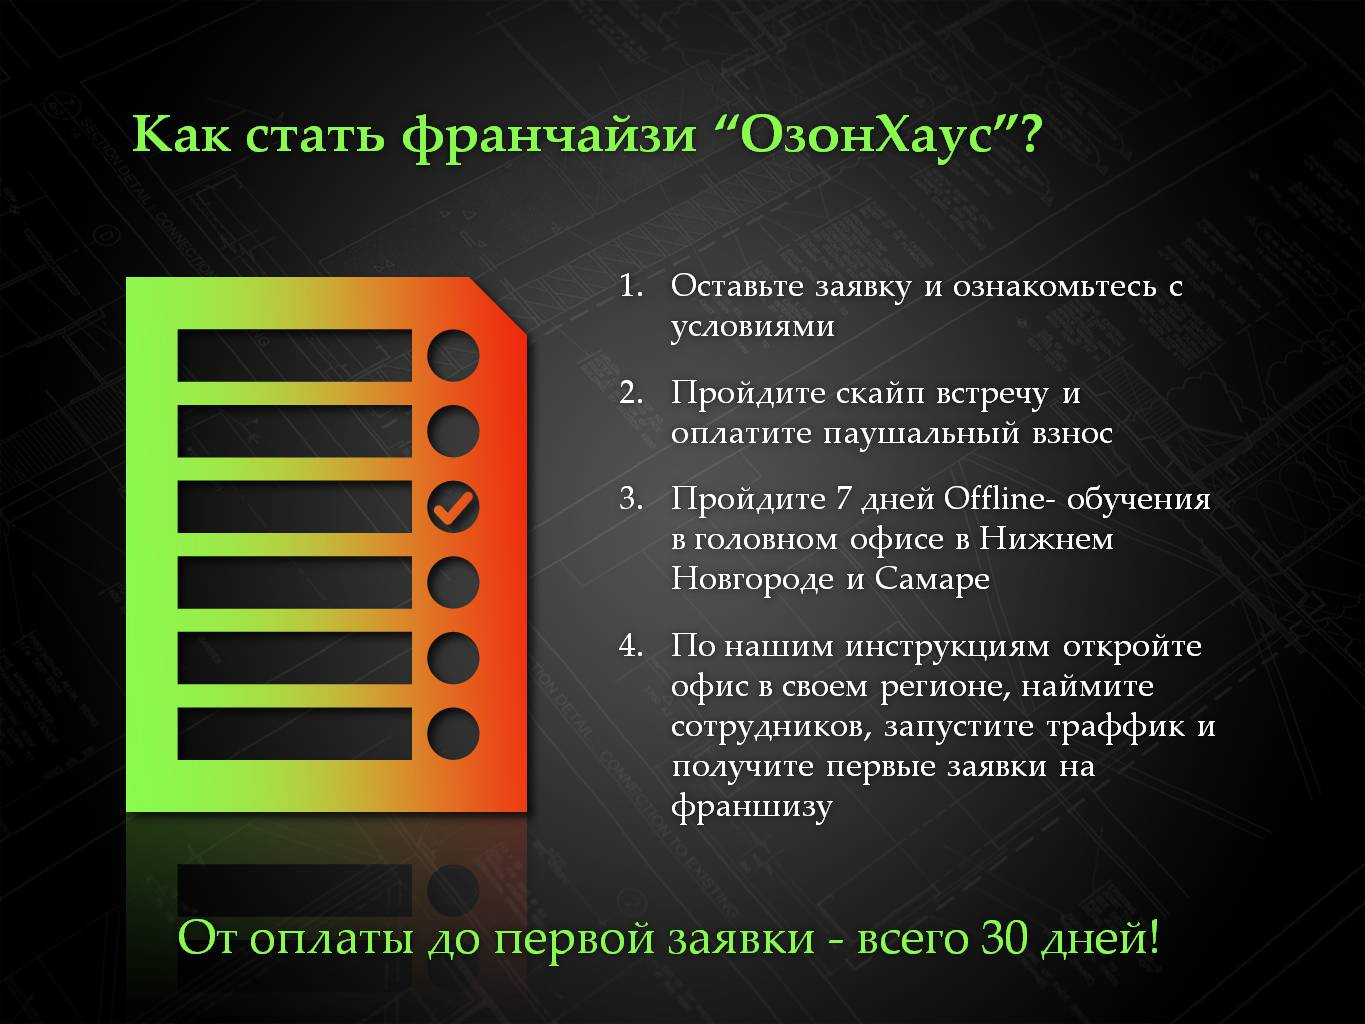 http://ozonhouse.ru/images/upload/Слайд25.JPG